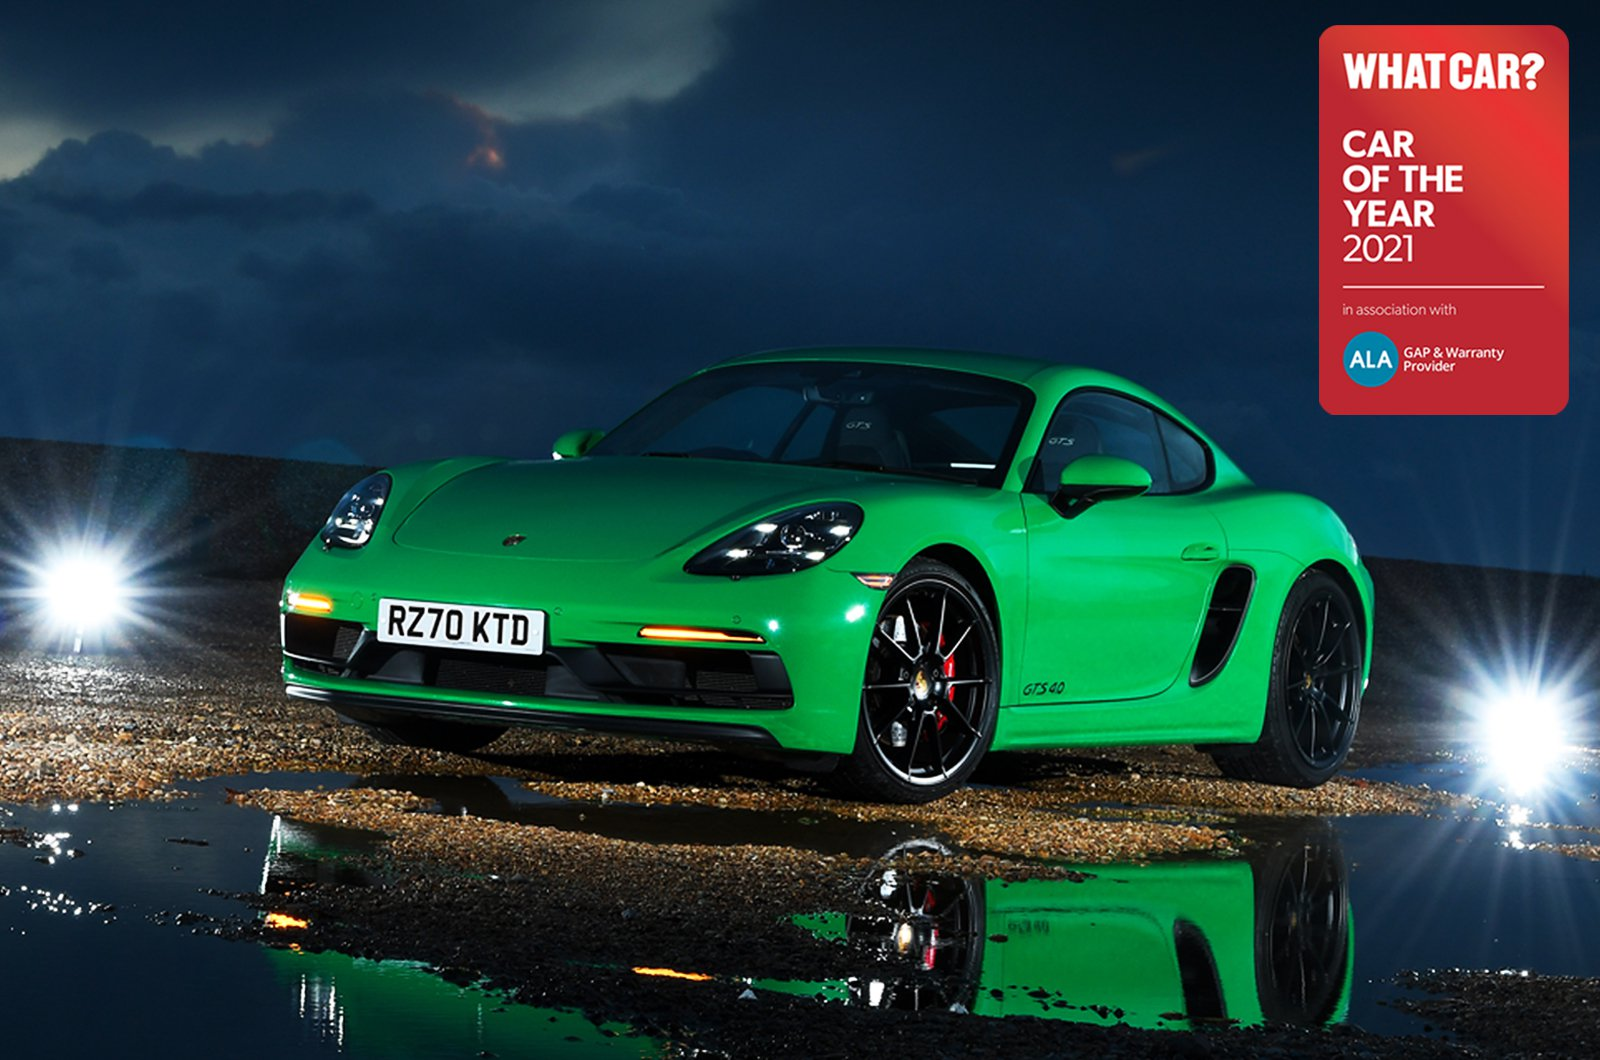 Sports Car of the Year - Porsche 718 Cayman GTS